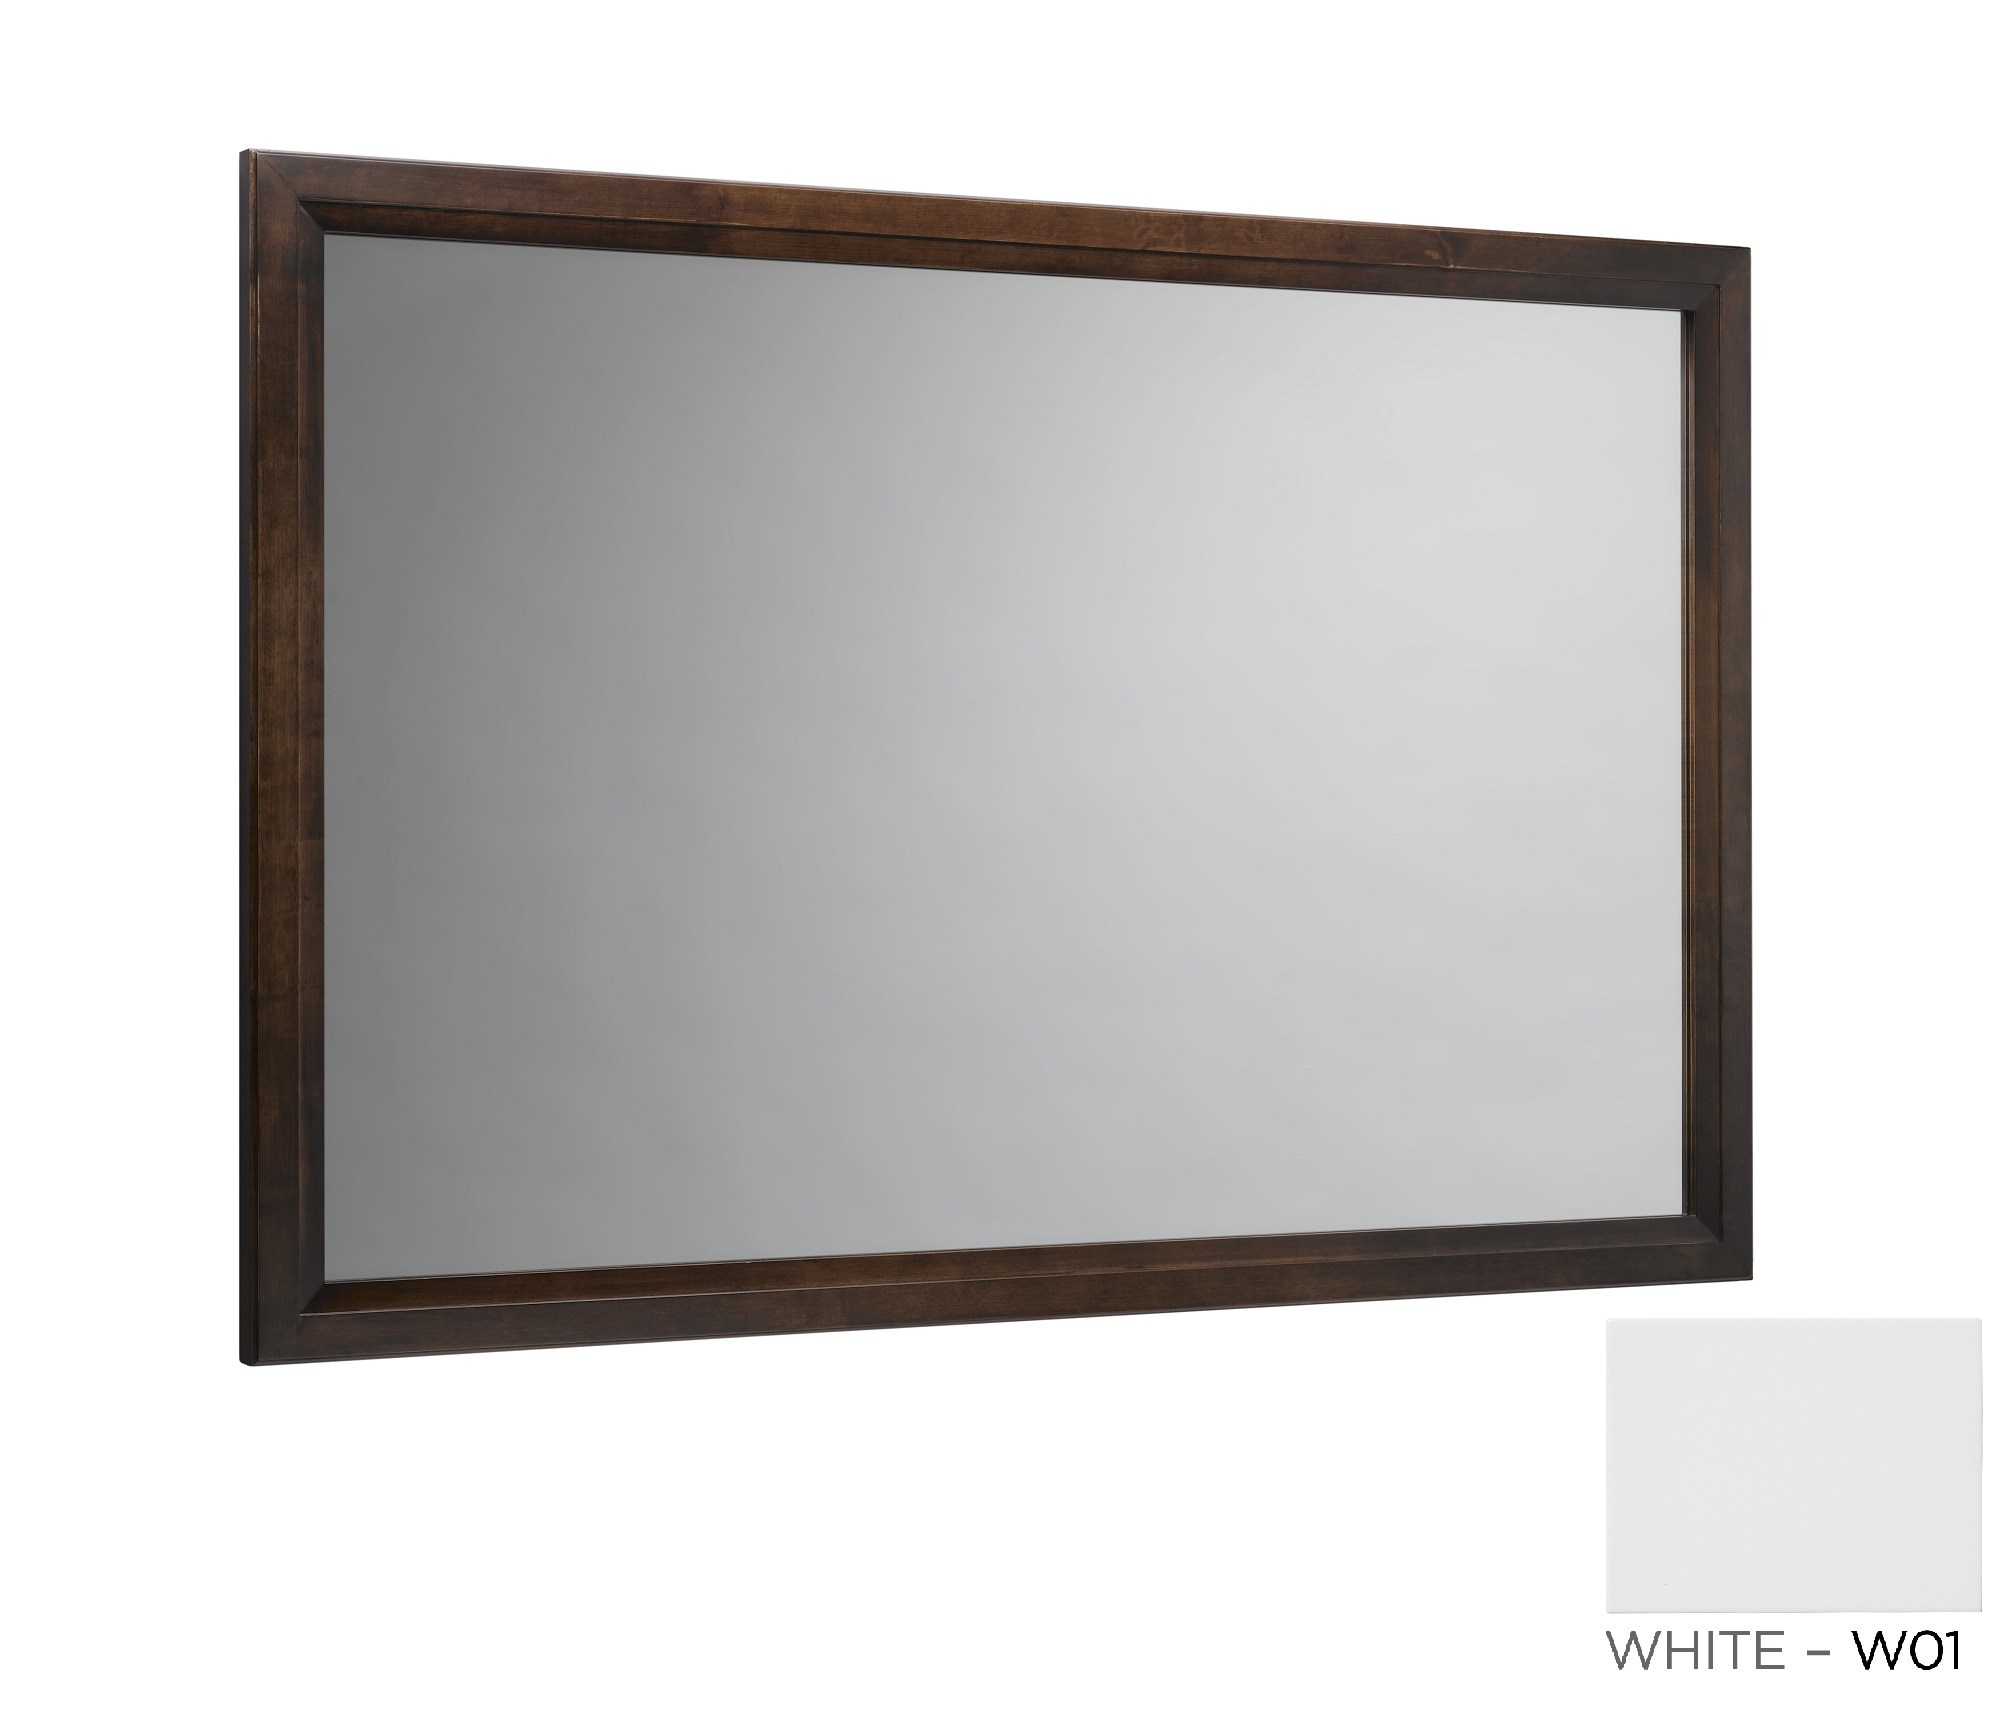 "Ronbow Transitional 60"" x 39"" Solid Wood Framed Bathroom Mirror in White"